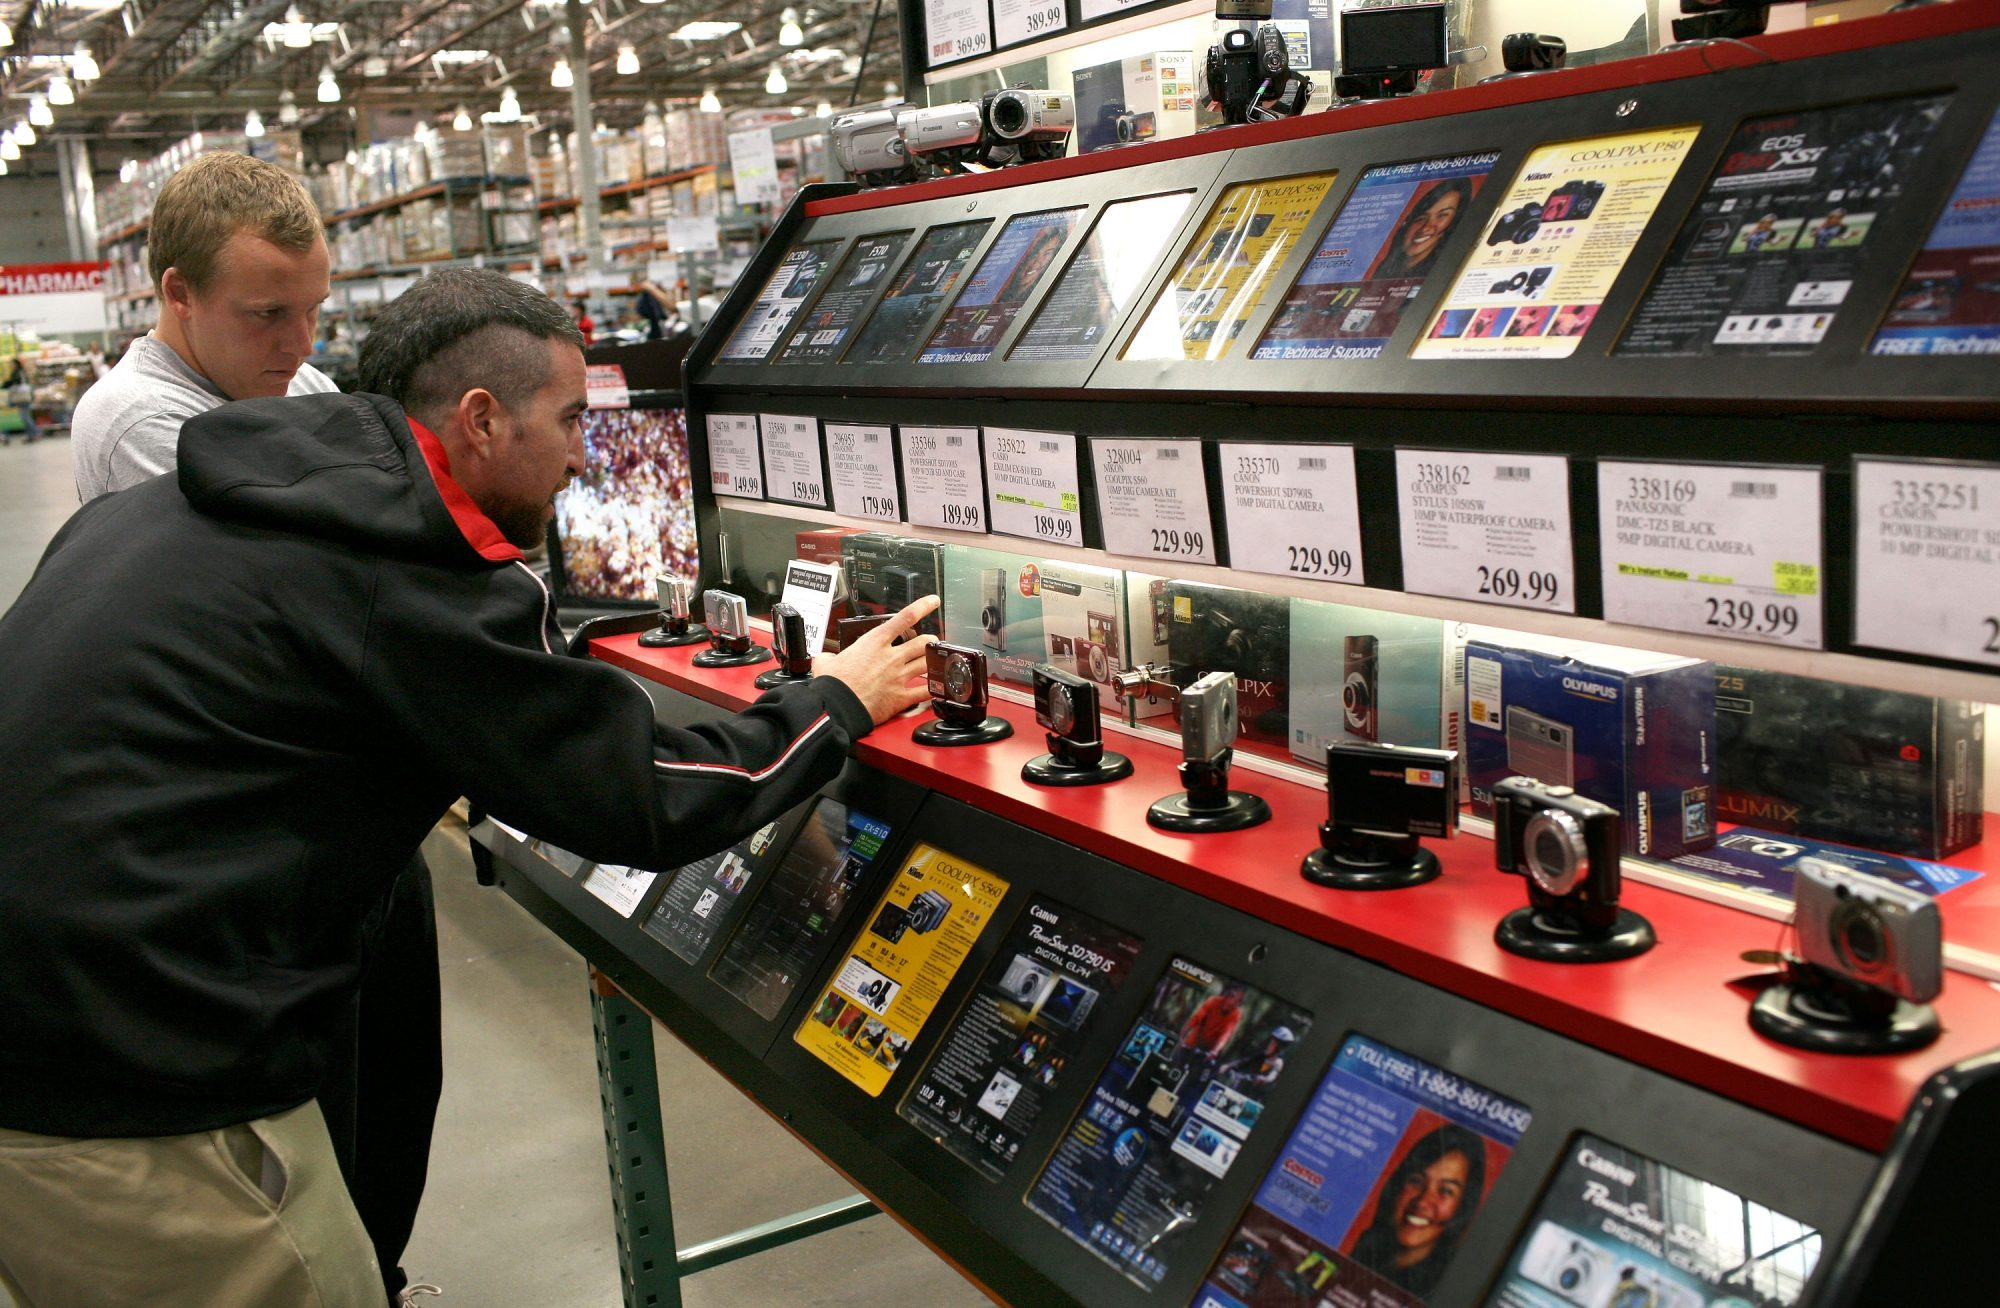 Consumer Confidence Slides To Lowest Level In Over 50 Years